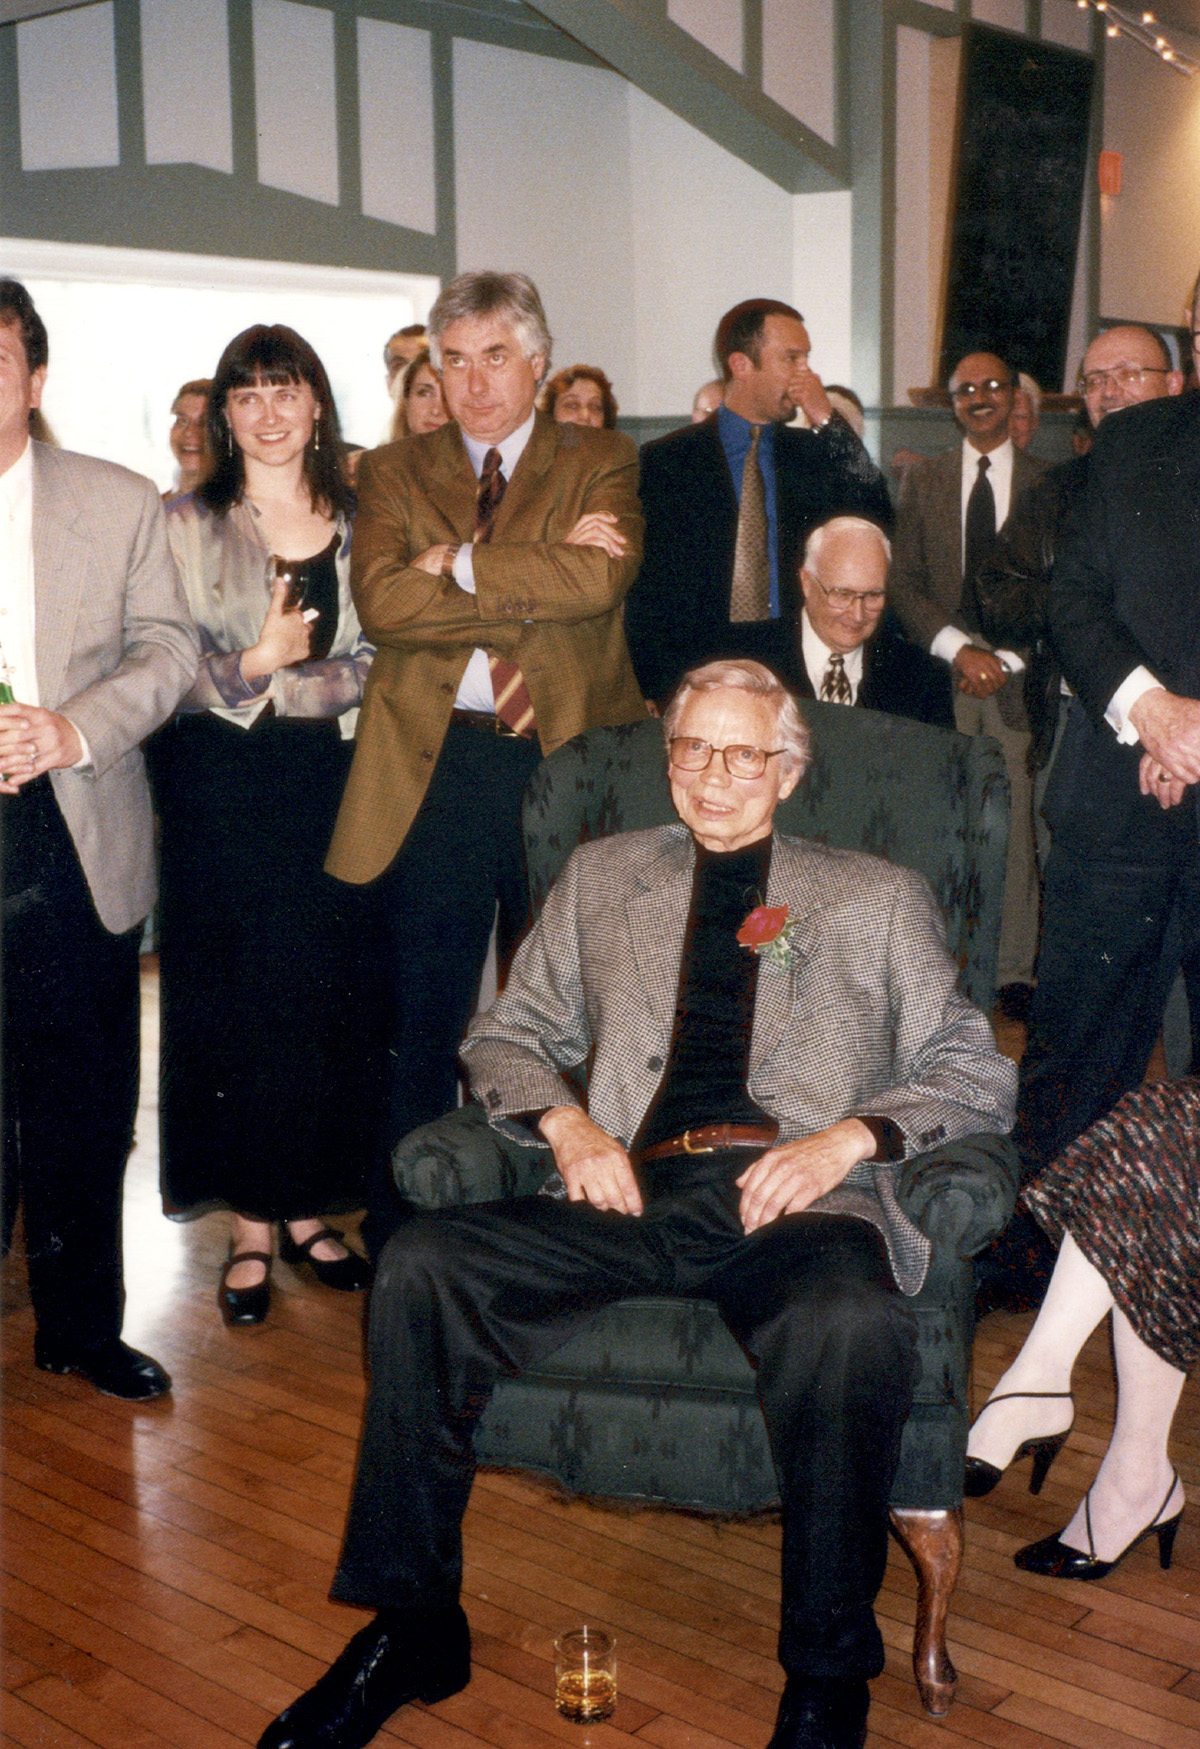 Don Atkins at his retirement party from Benwell-Atkins near the end of the 1990s (he kept going to the office after he retired...). Behind him, centre standing, is Bob Doull with Leanne Nash. Cut off on the far left is Matthew Petley-Jones.